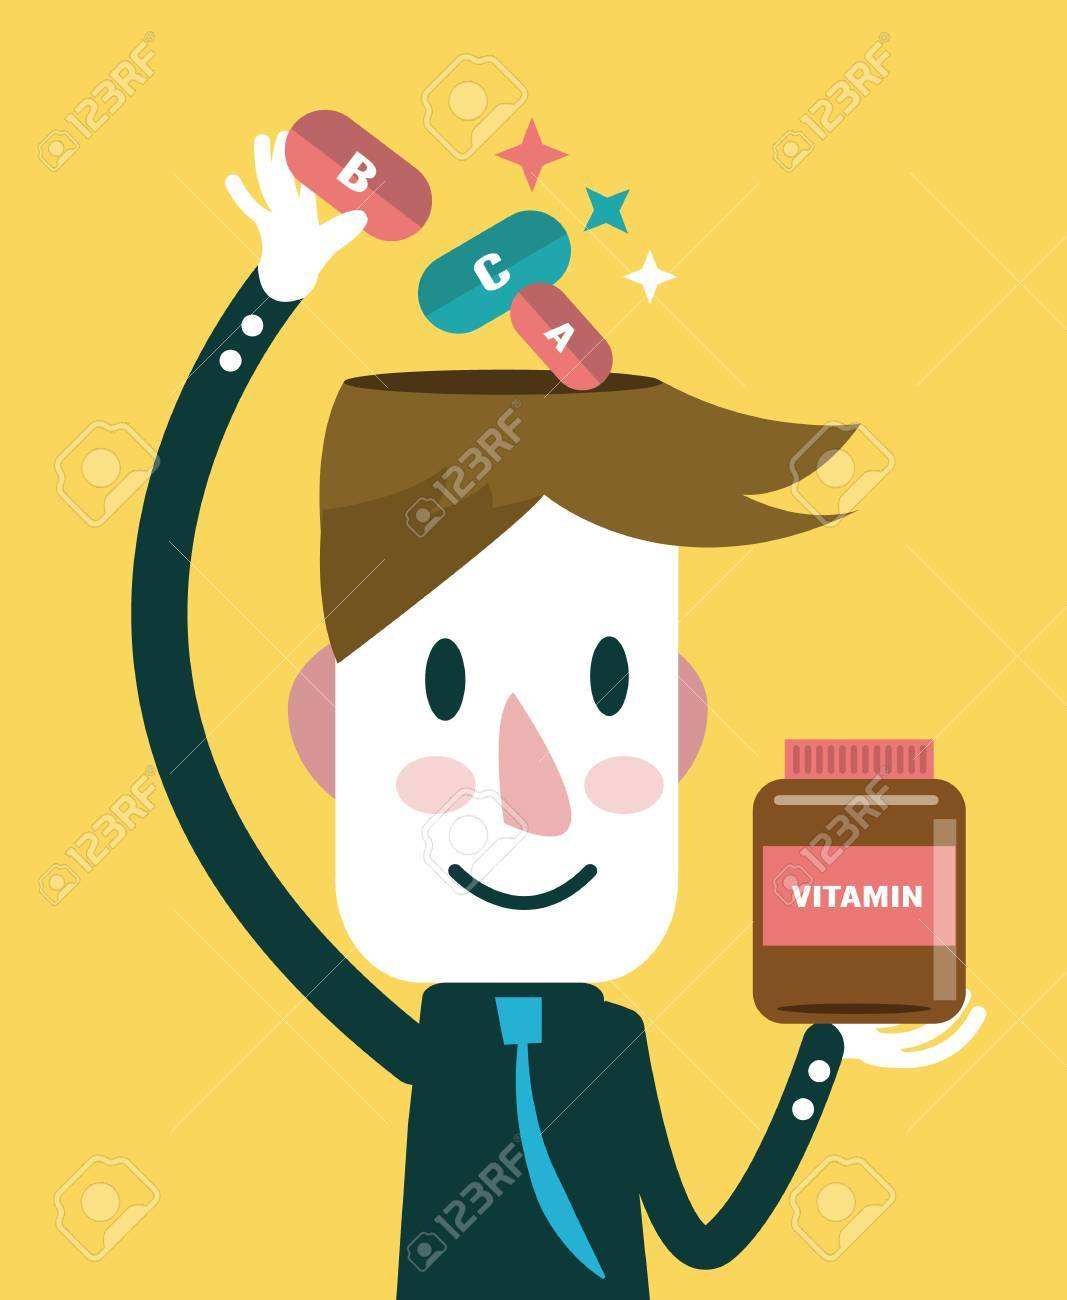 Businessman putting vitamins in his head health care concept vector illustration - 30135238